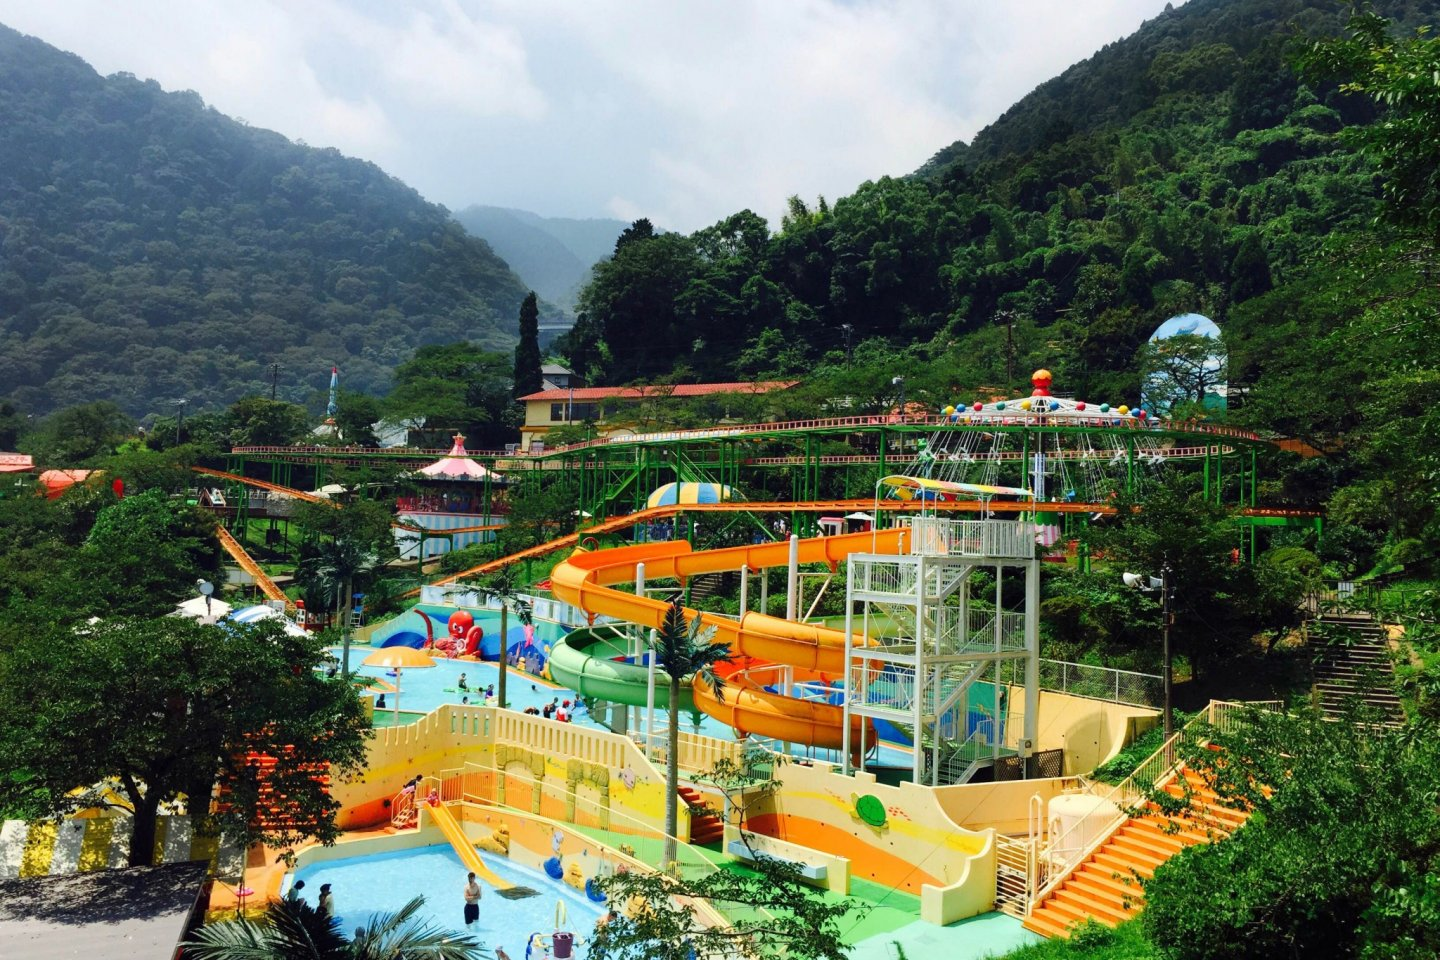 A view of the water park activity on this hot day.